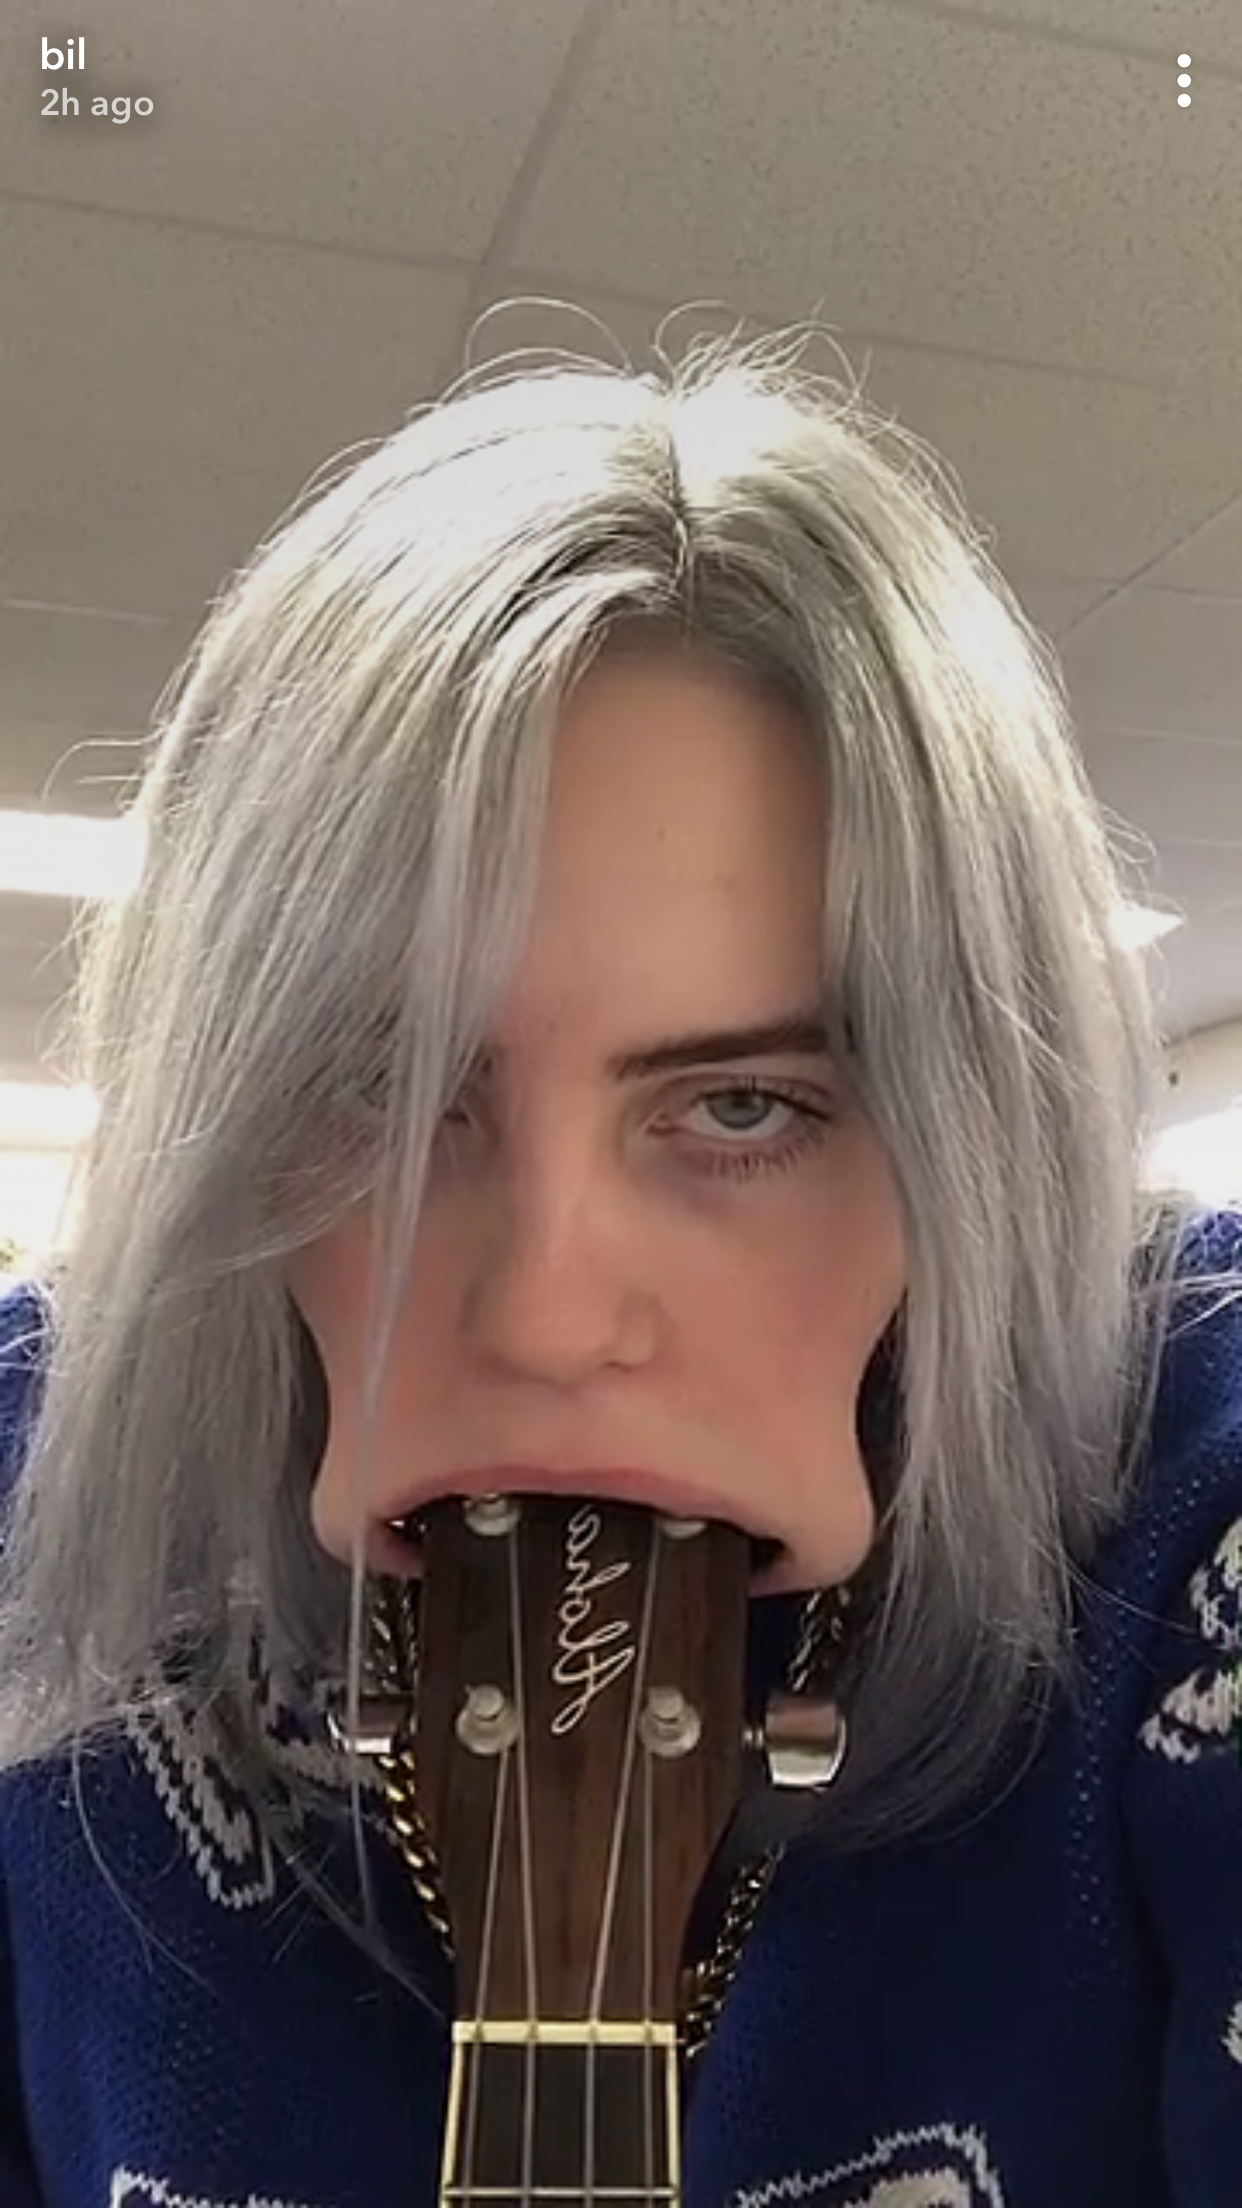 Umm Okay Billie  Billie Eye-Lish  Billie Eilish, Celebrities, Singer-9007